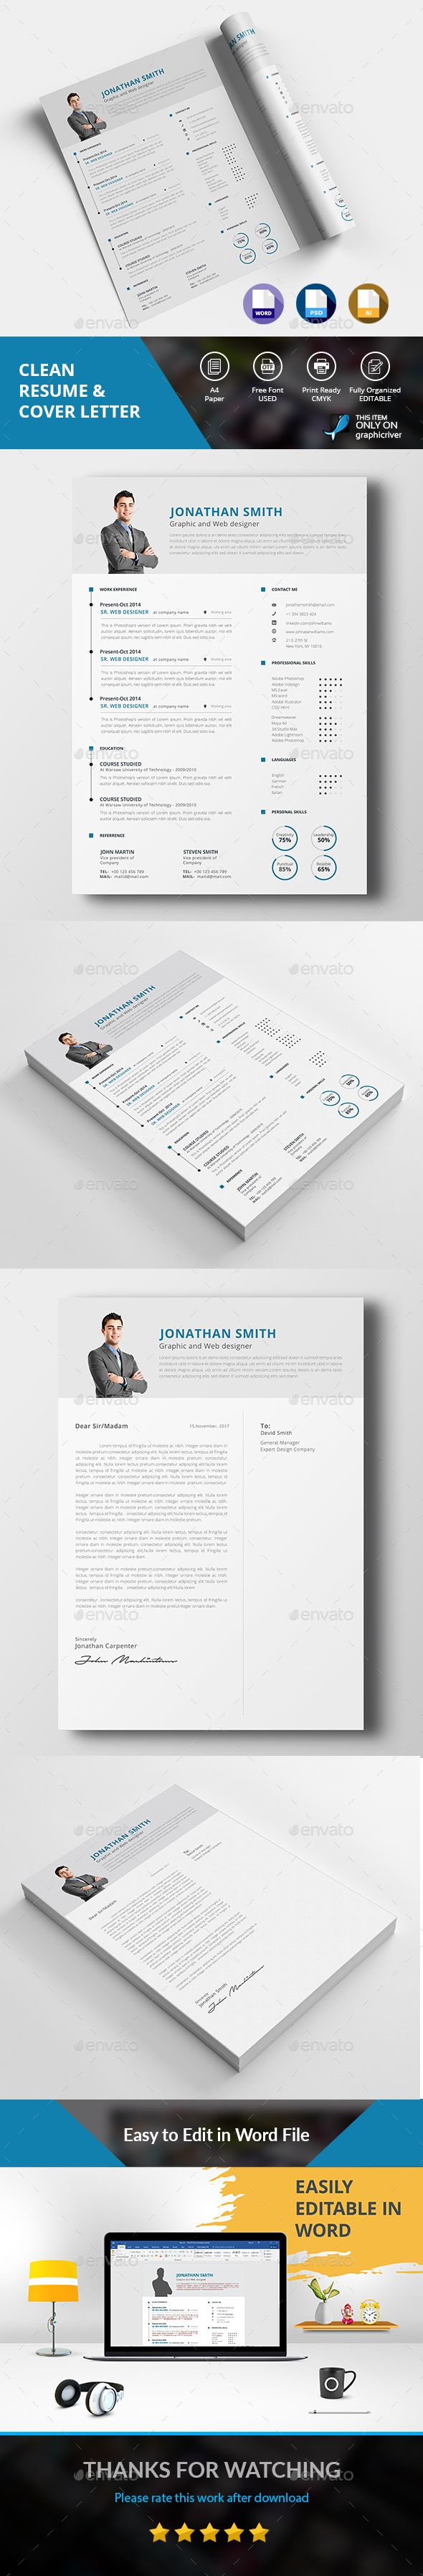 Clean Resume By DesignsTemplate This Is Clean Resume U0026 Cover Letter Template  . This Template Download Contains 300 Dpi Print Ready CMYK Psd Files.